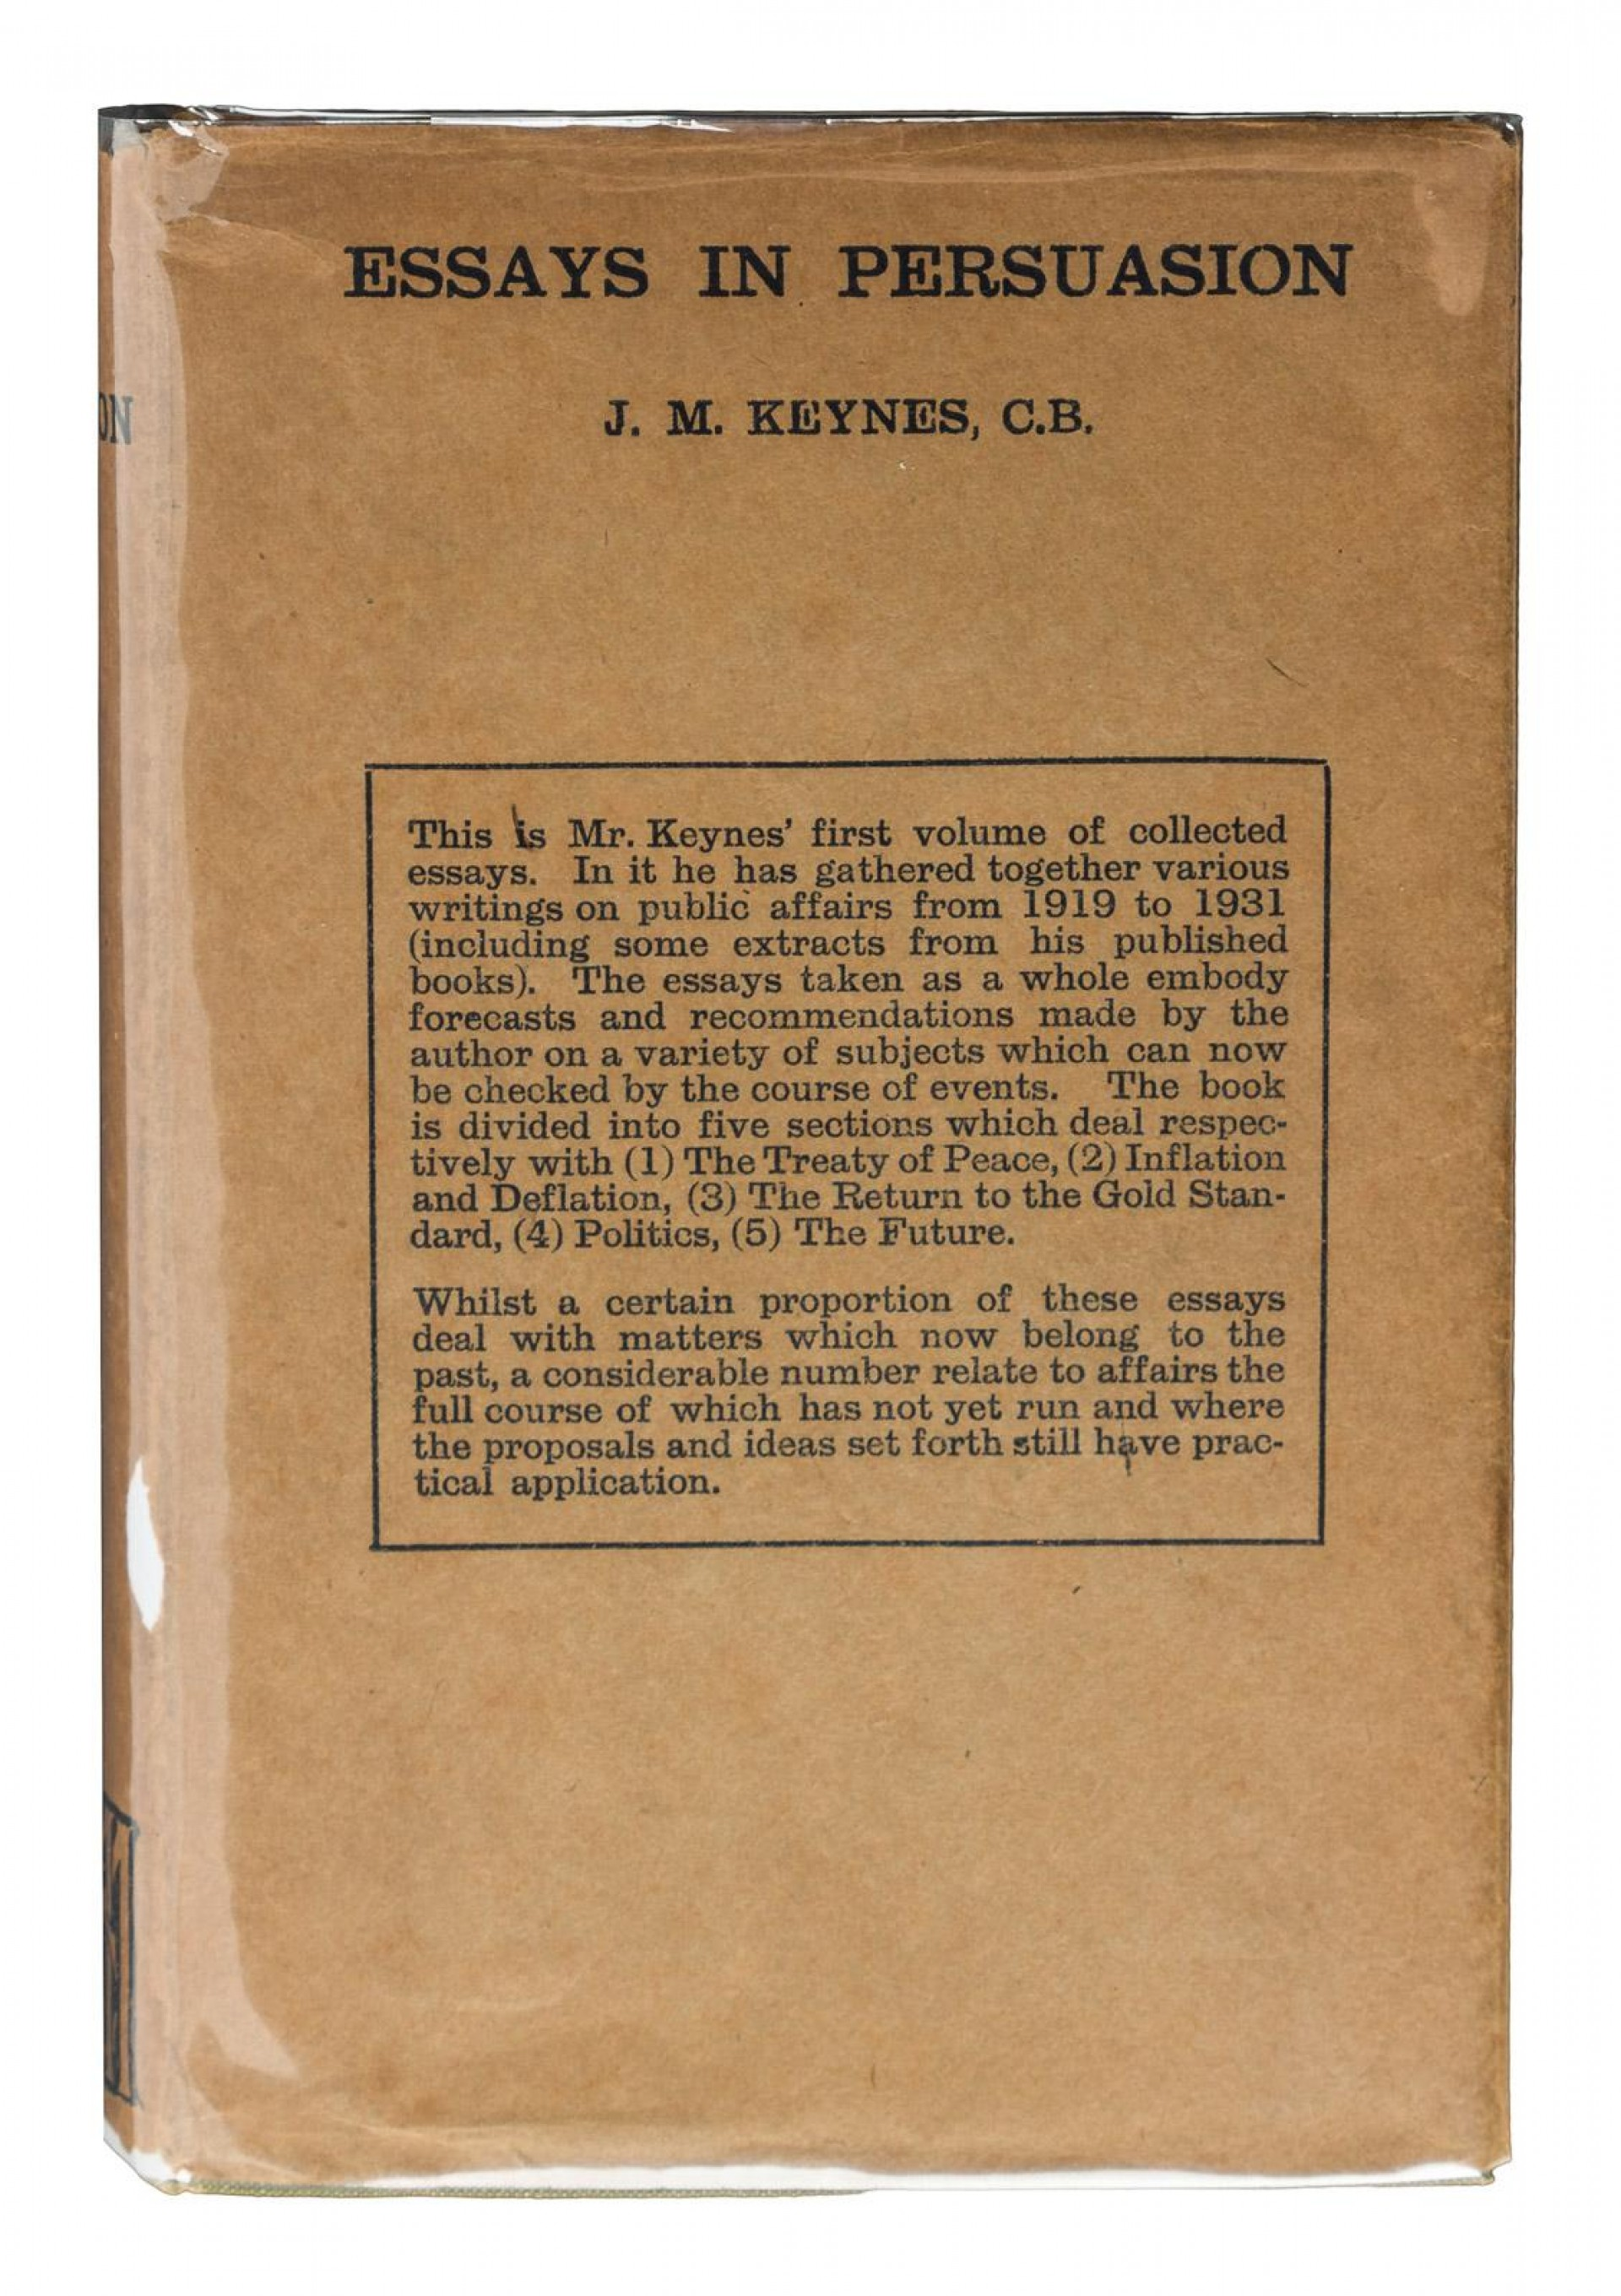 015 237551 0 Essay Example Essays In Remarkable Persuasion Keynes 1931 Wikipedia Summary 1920